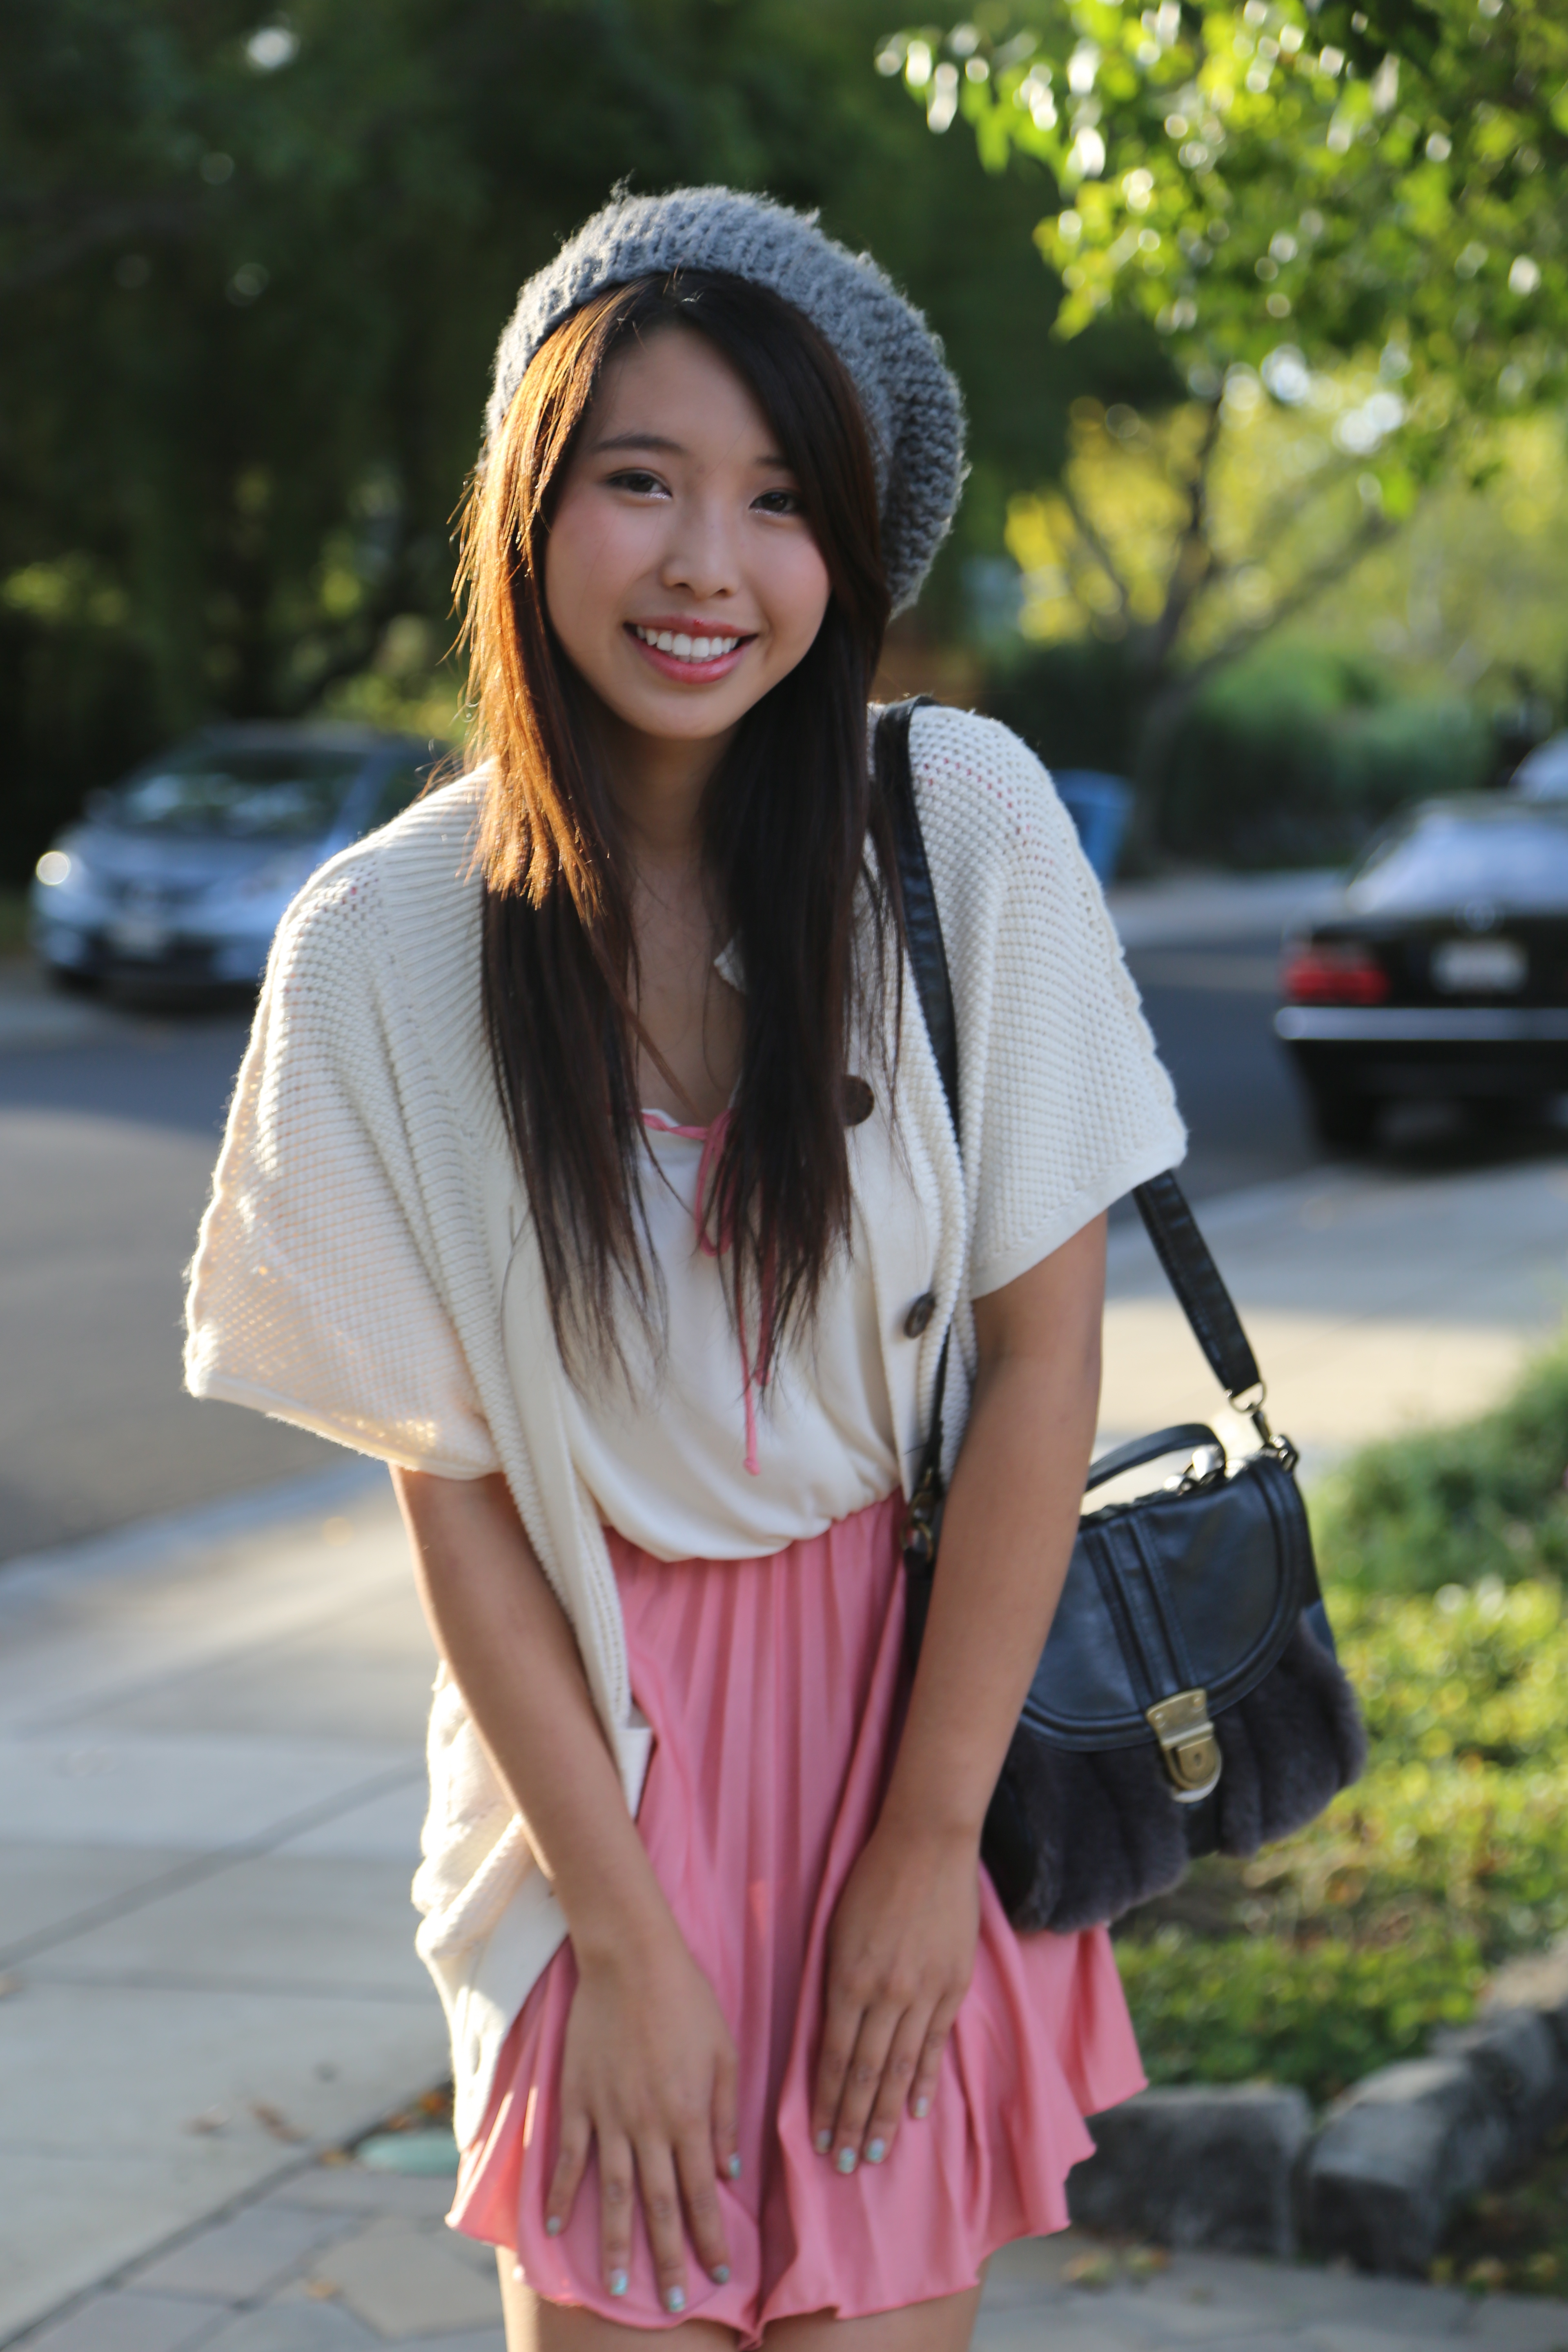 palo alto asian girl personals Personal ads for palo alto, ca are a great way to find a life partner, movie date, or a quick hookup personals are for people local to palo alto.